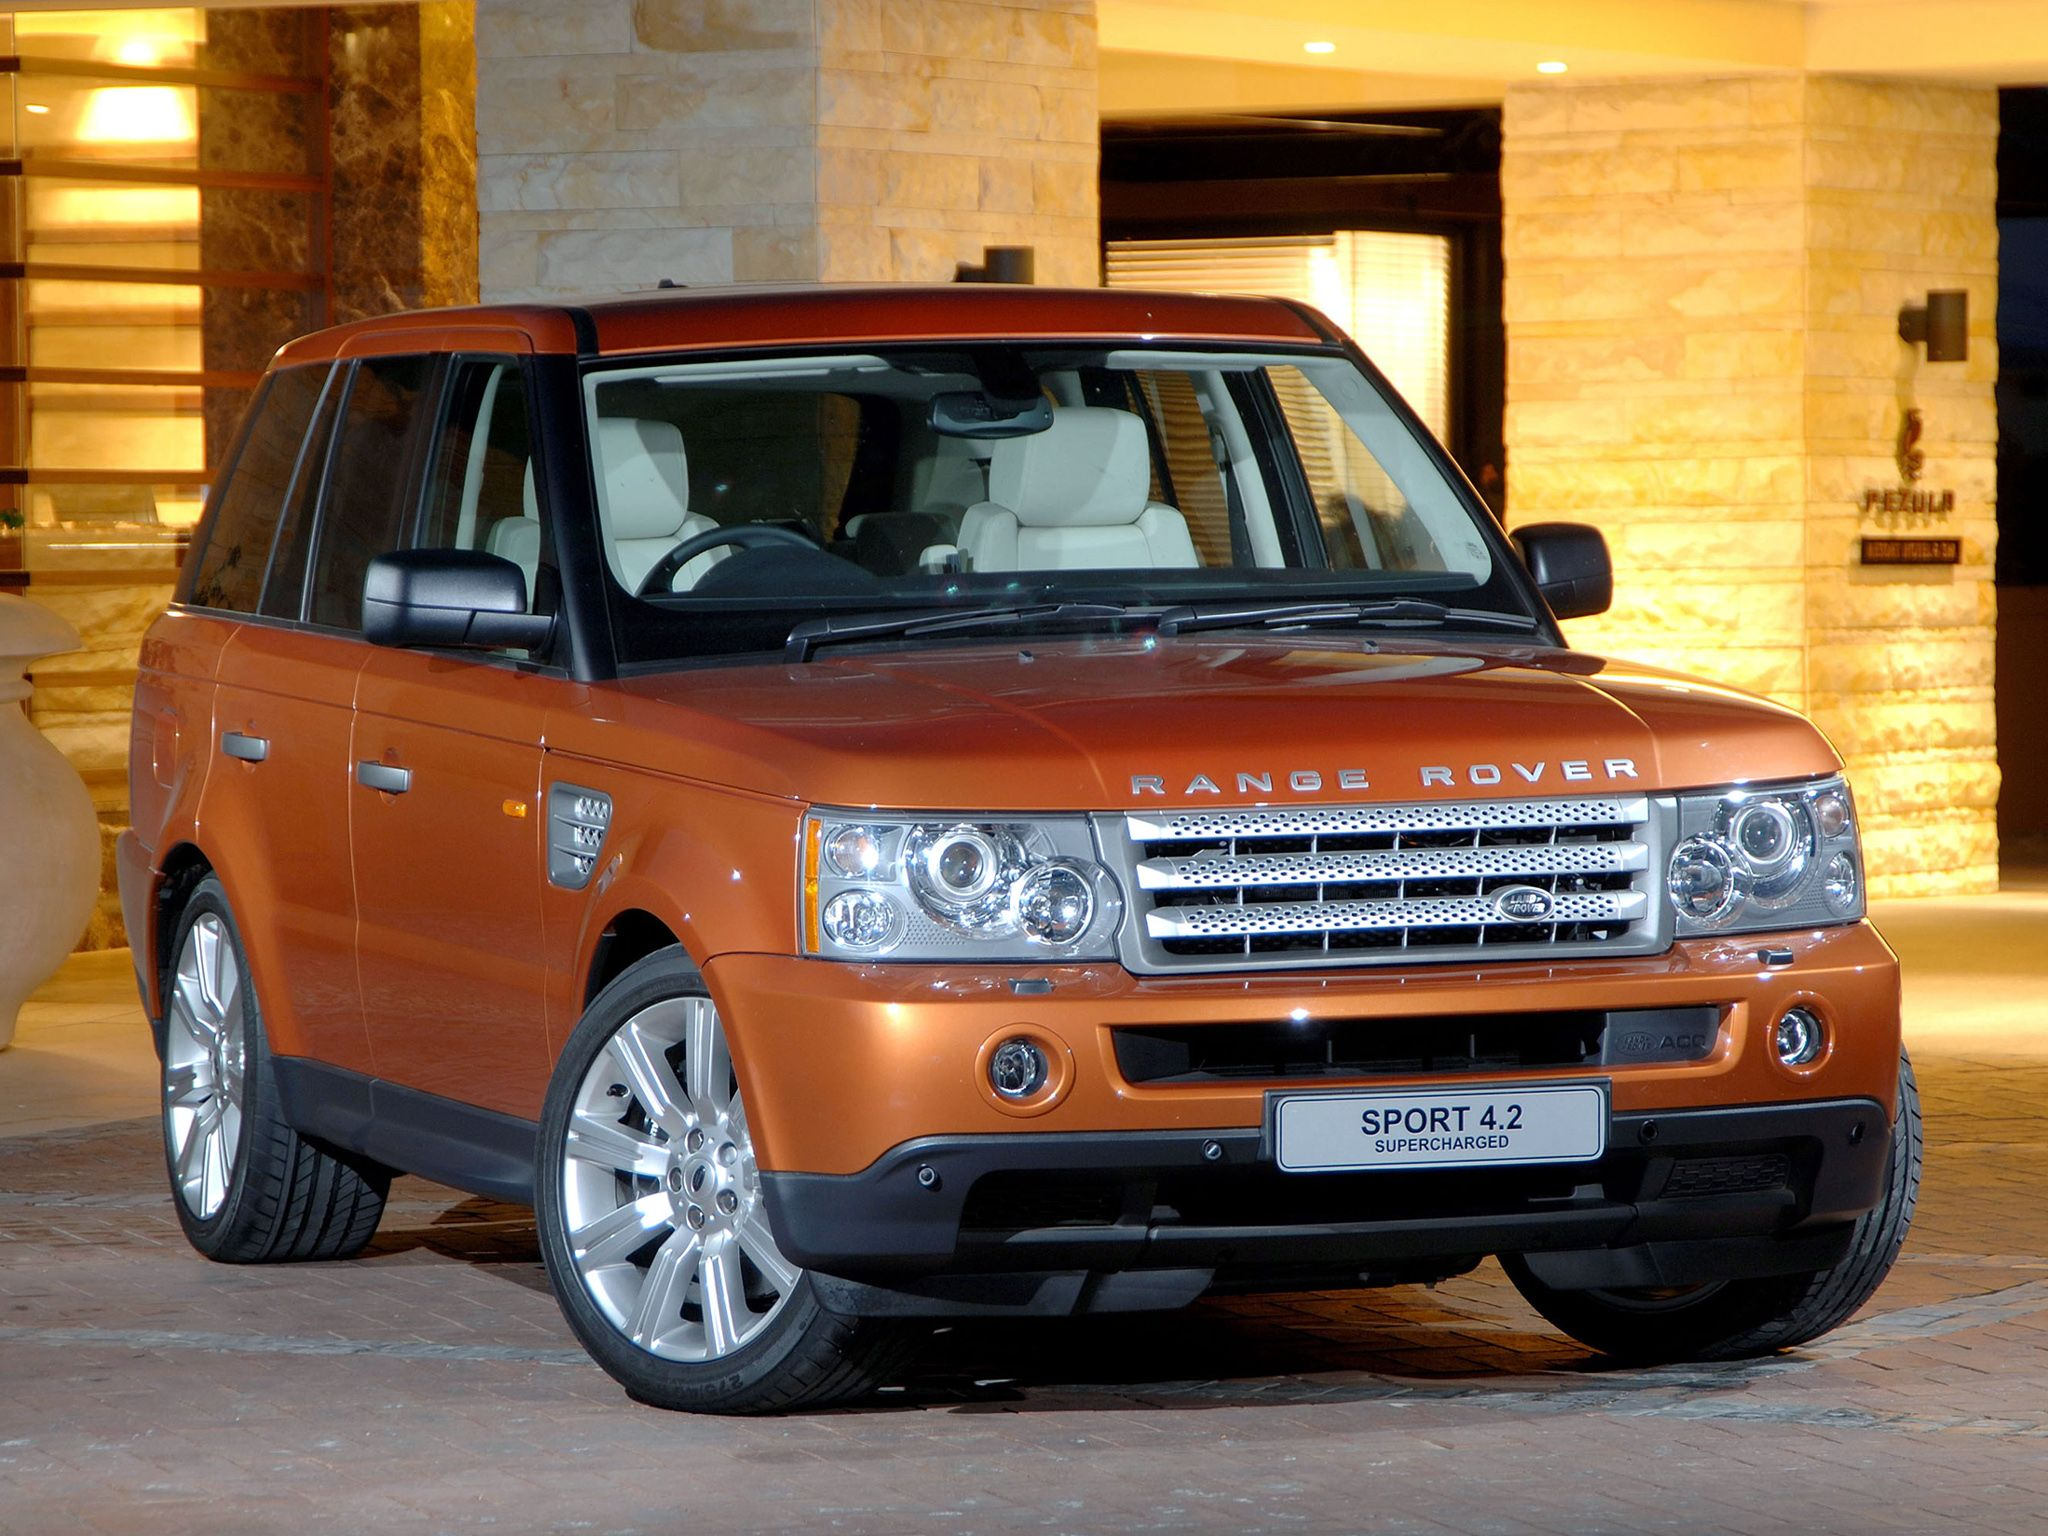 Land Rover Range Rover Sport Supercharged. Orange is my